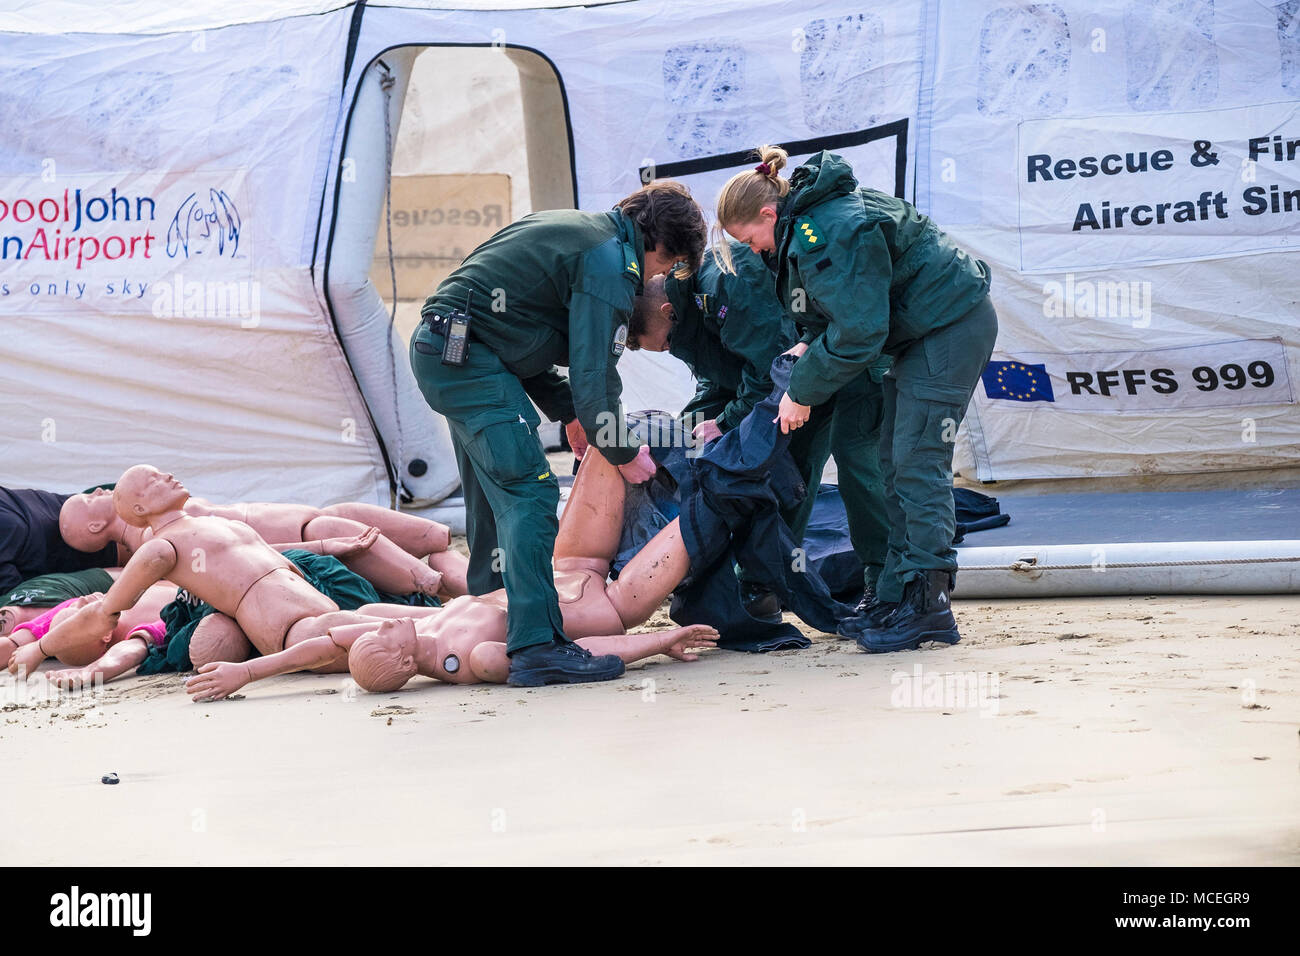 Sanitäter dressing Mannequins in der Vorbereitung für den Einsatz in einem GMICE Major Incident Übung im Hafen von Newquay in Cornwall. Stockbild